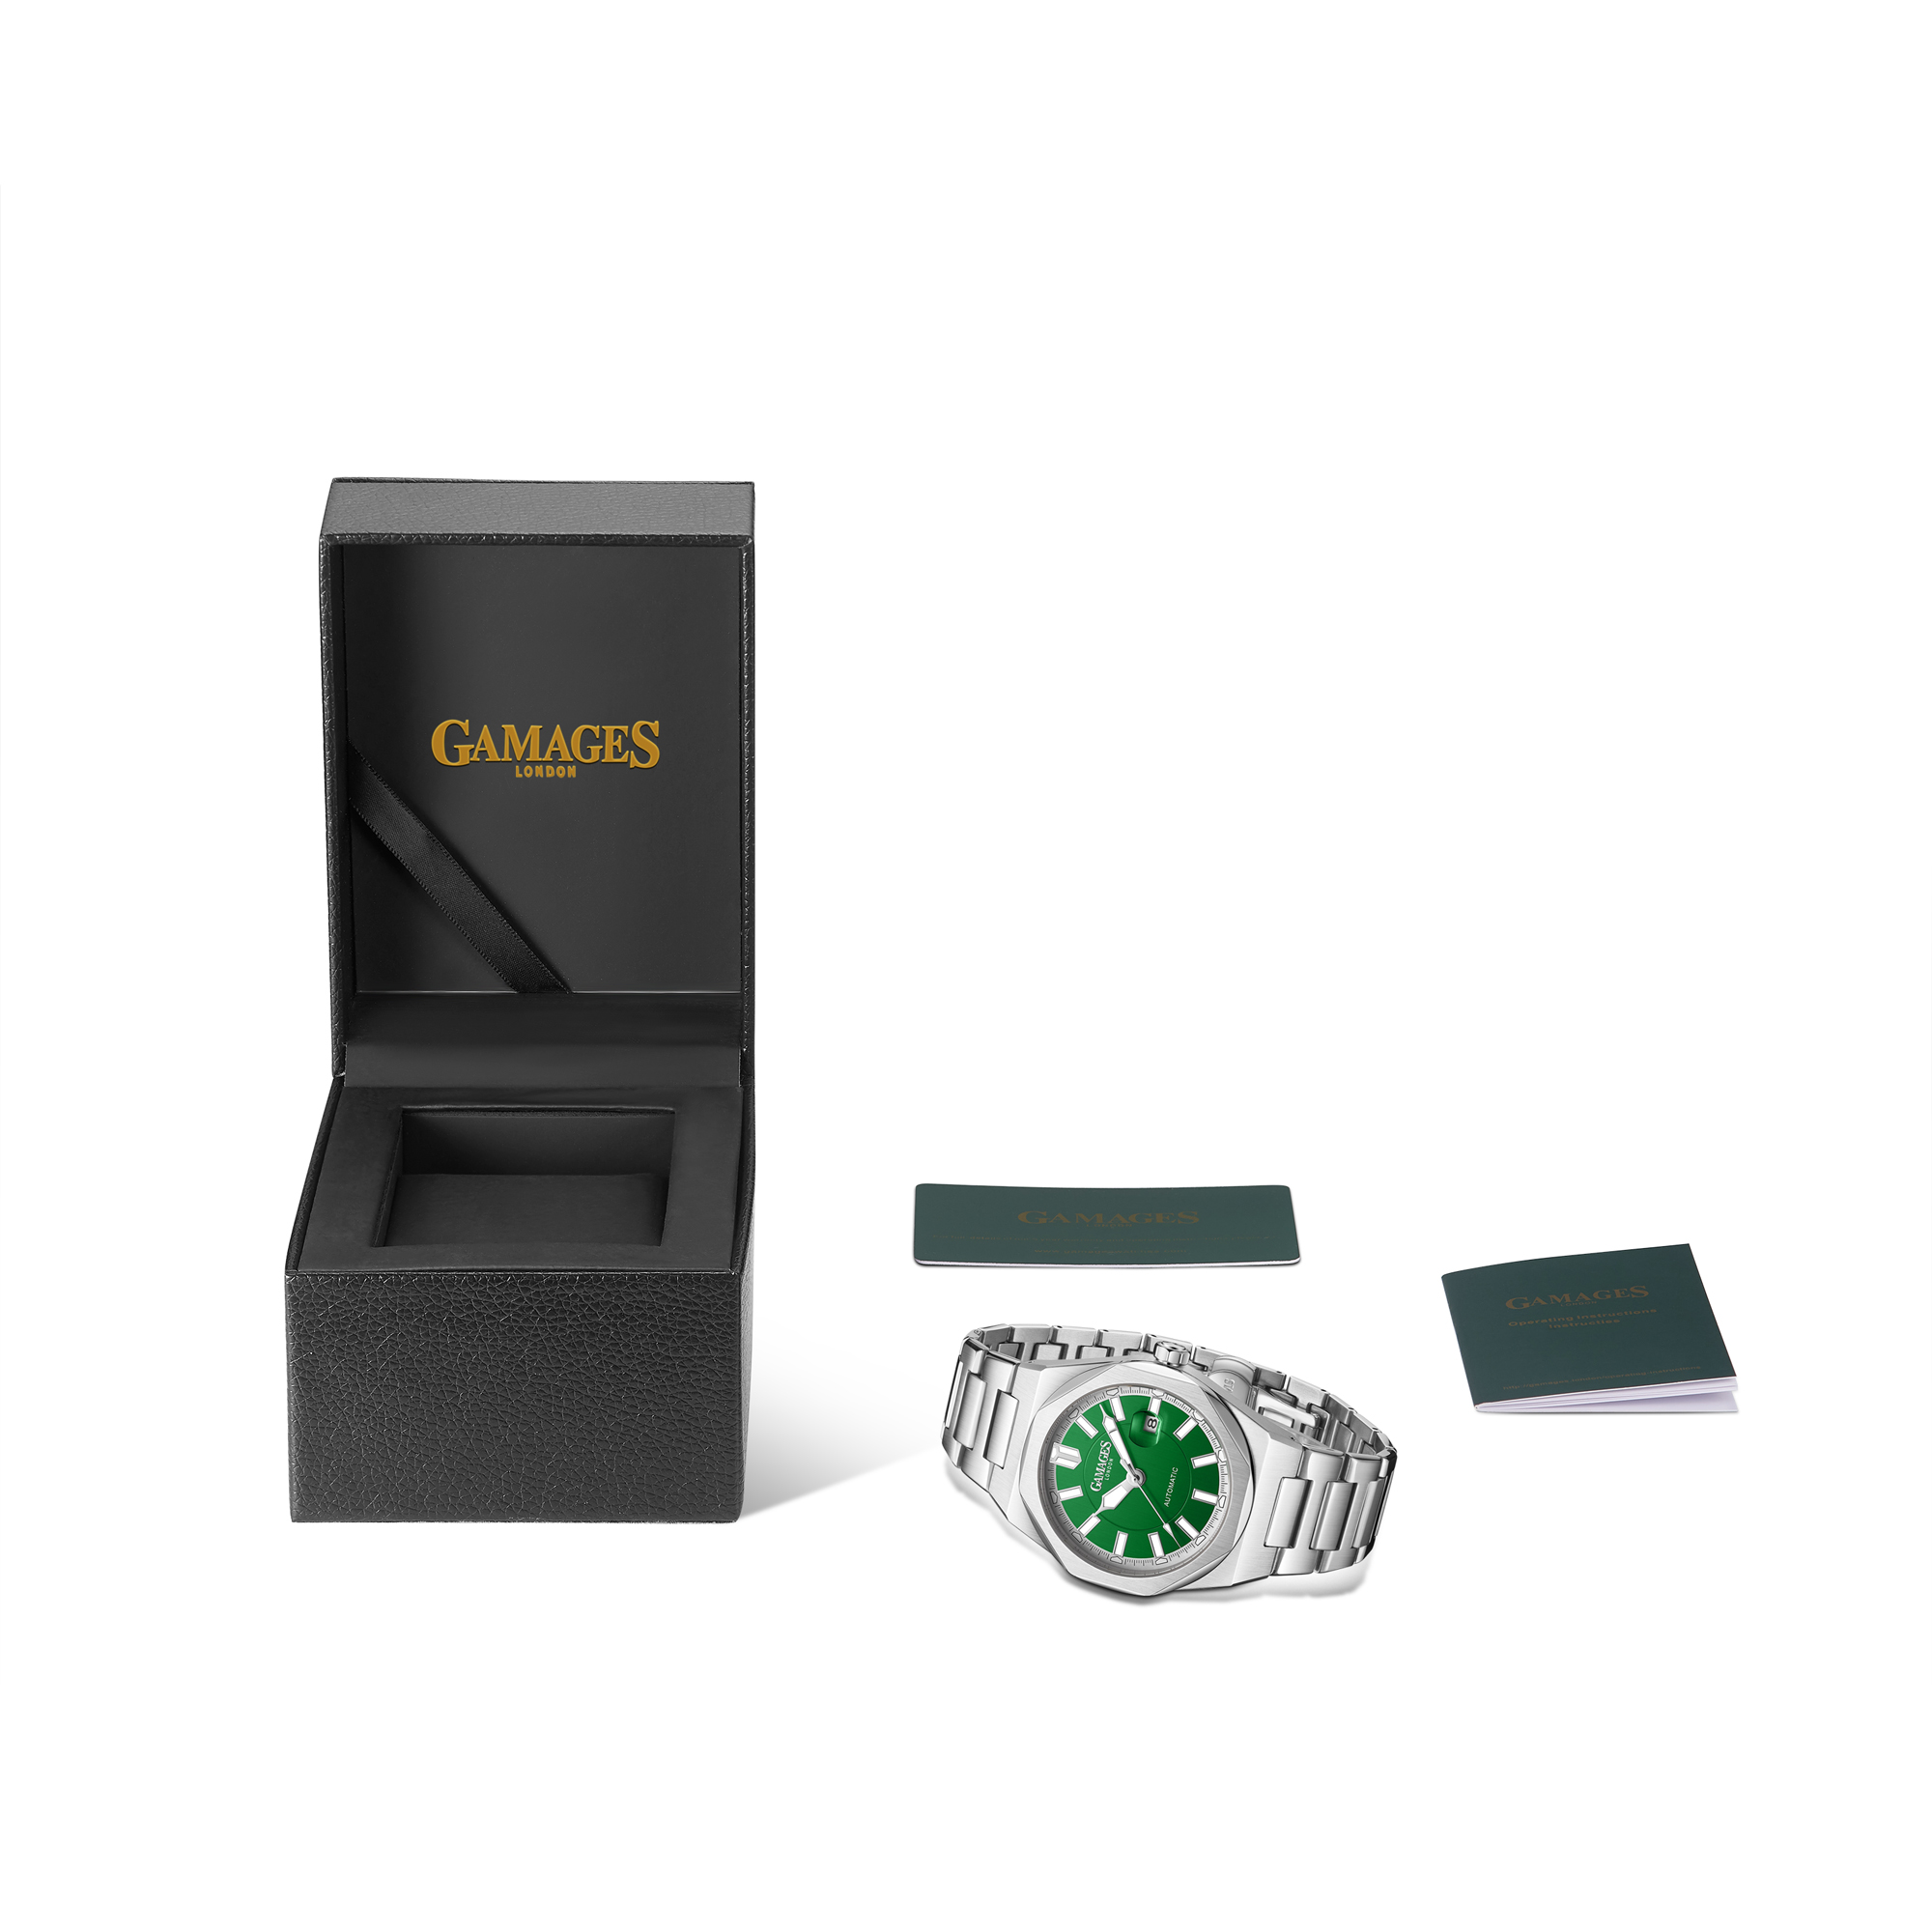 Ltd Edition Hand Assembled Gamages Quintessential Automatic Green – 5 Year Warranty & Free Delivery - Image 2 of 5